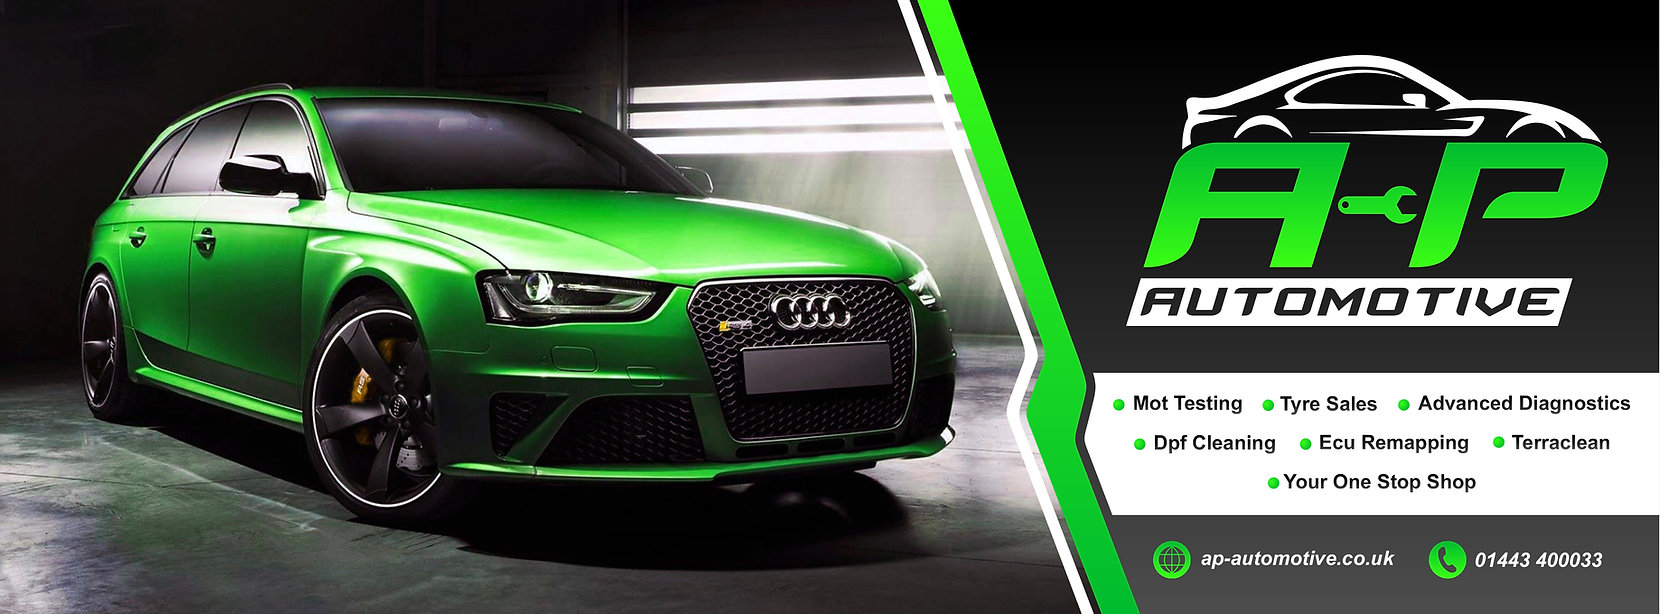 A-P AUTOMOTIVE FB COVER.jpg